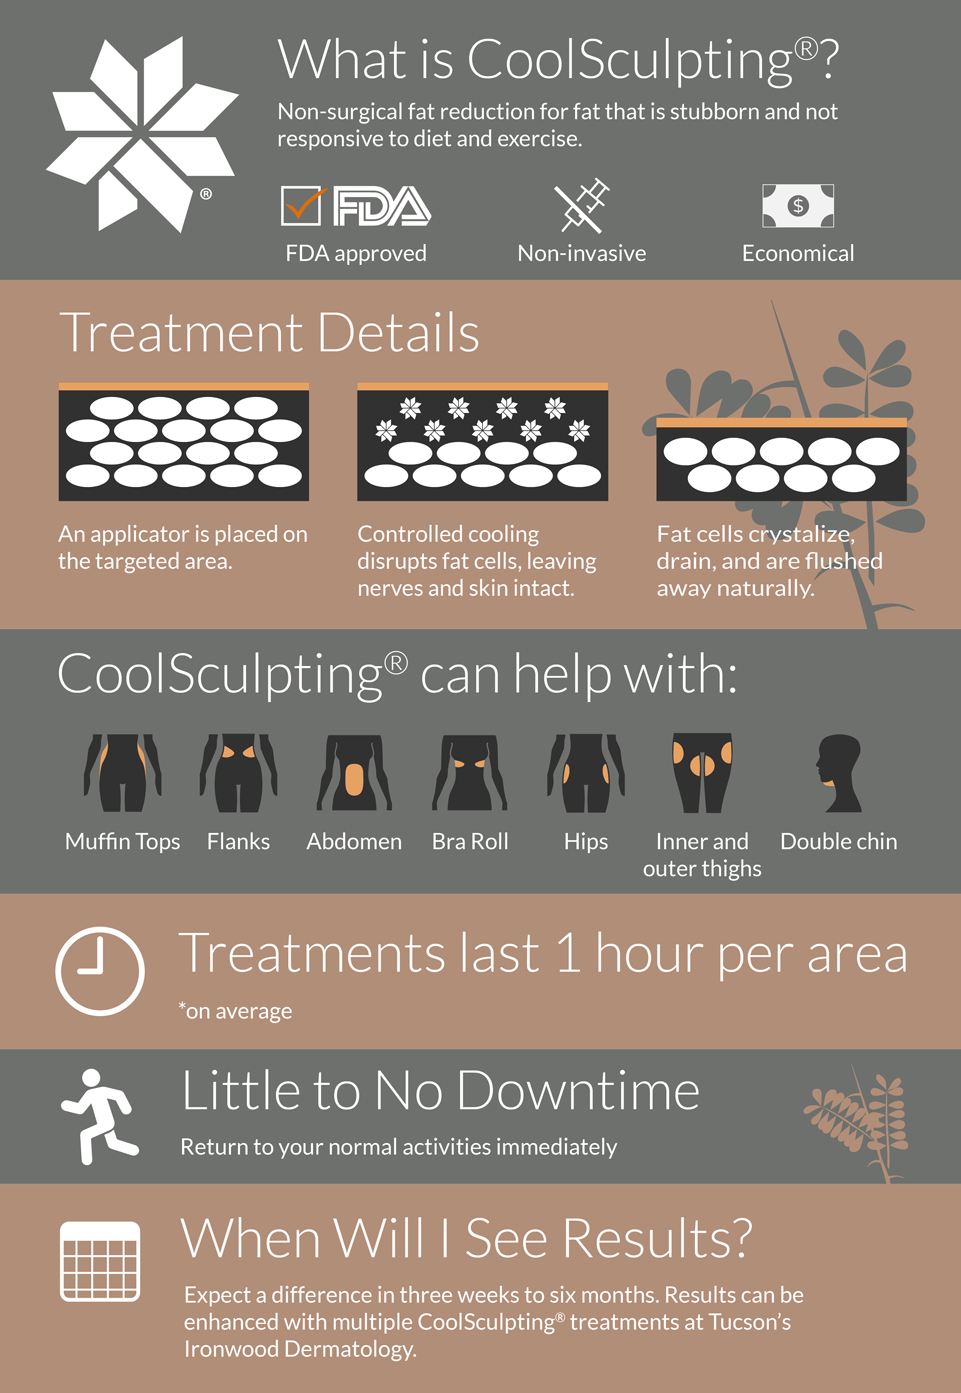 Non-surgical fat treatment with CoolSculpting in Tucson can comfortably reduce the size of fat pockets through a controlled cooling mechanism.